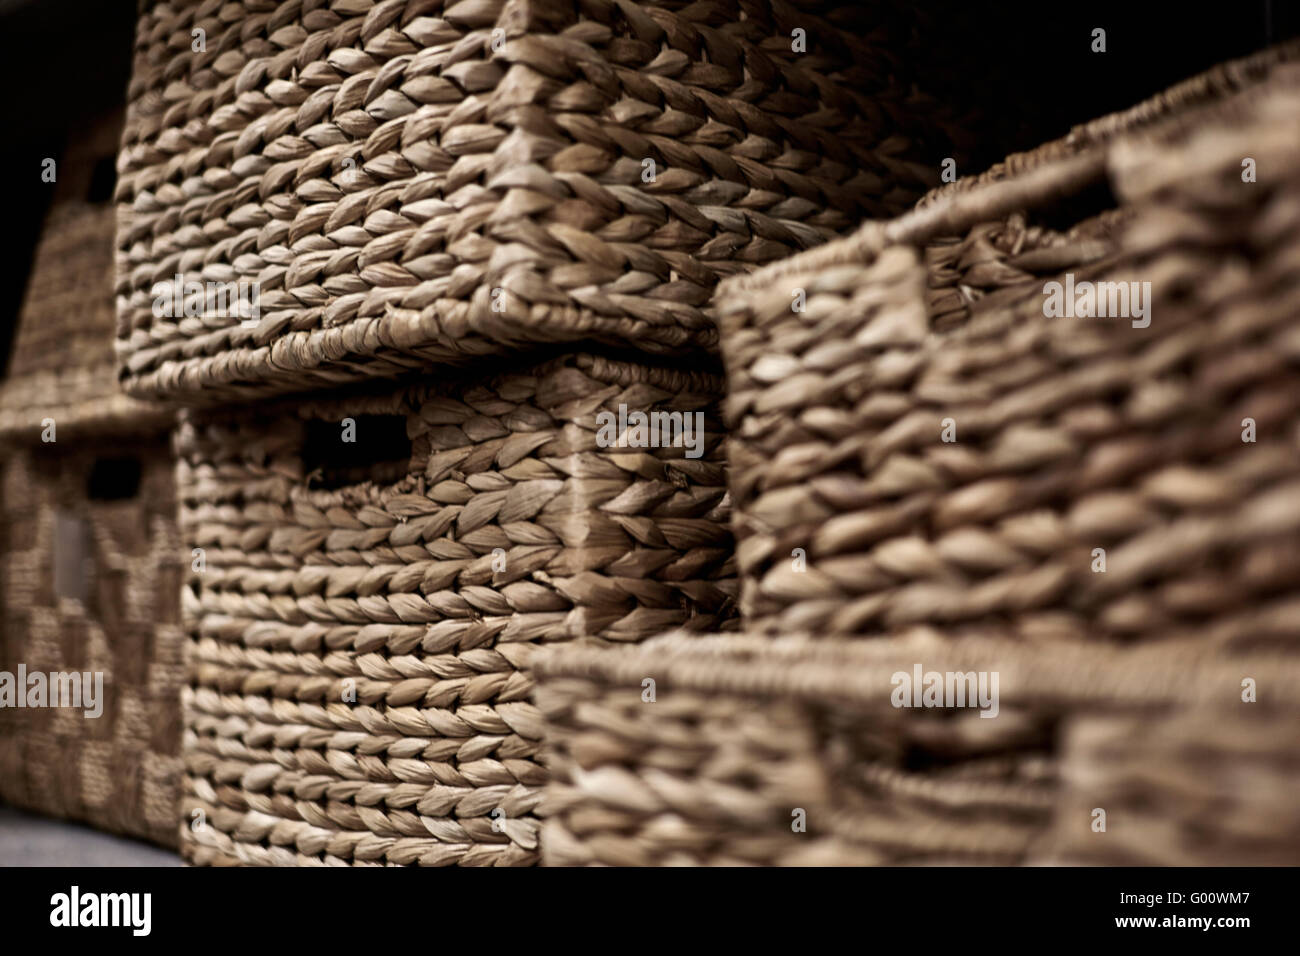 Stacks Of Natural Fiber Storage Baskets In A Rectangular Shape